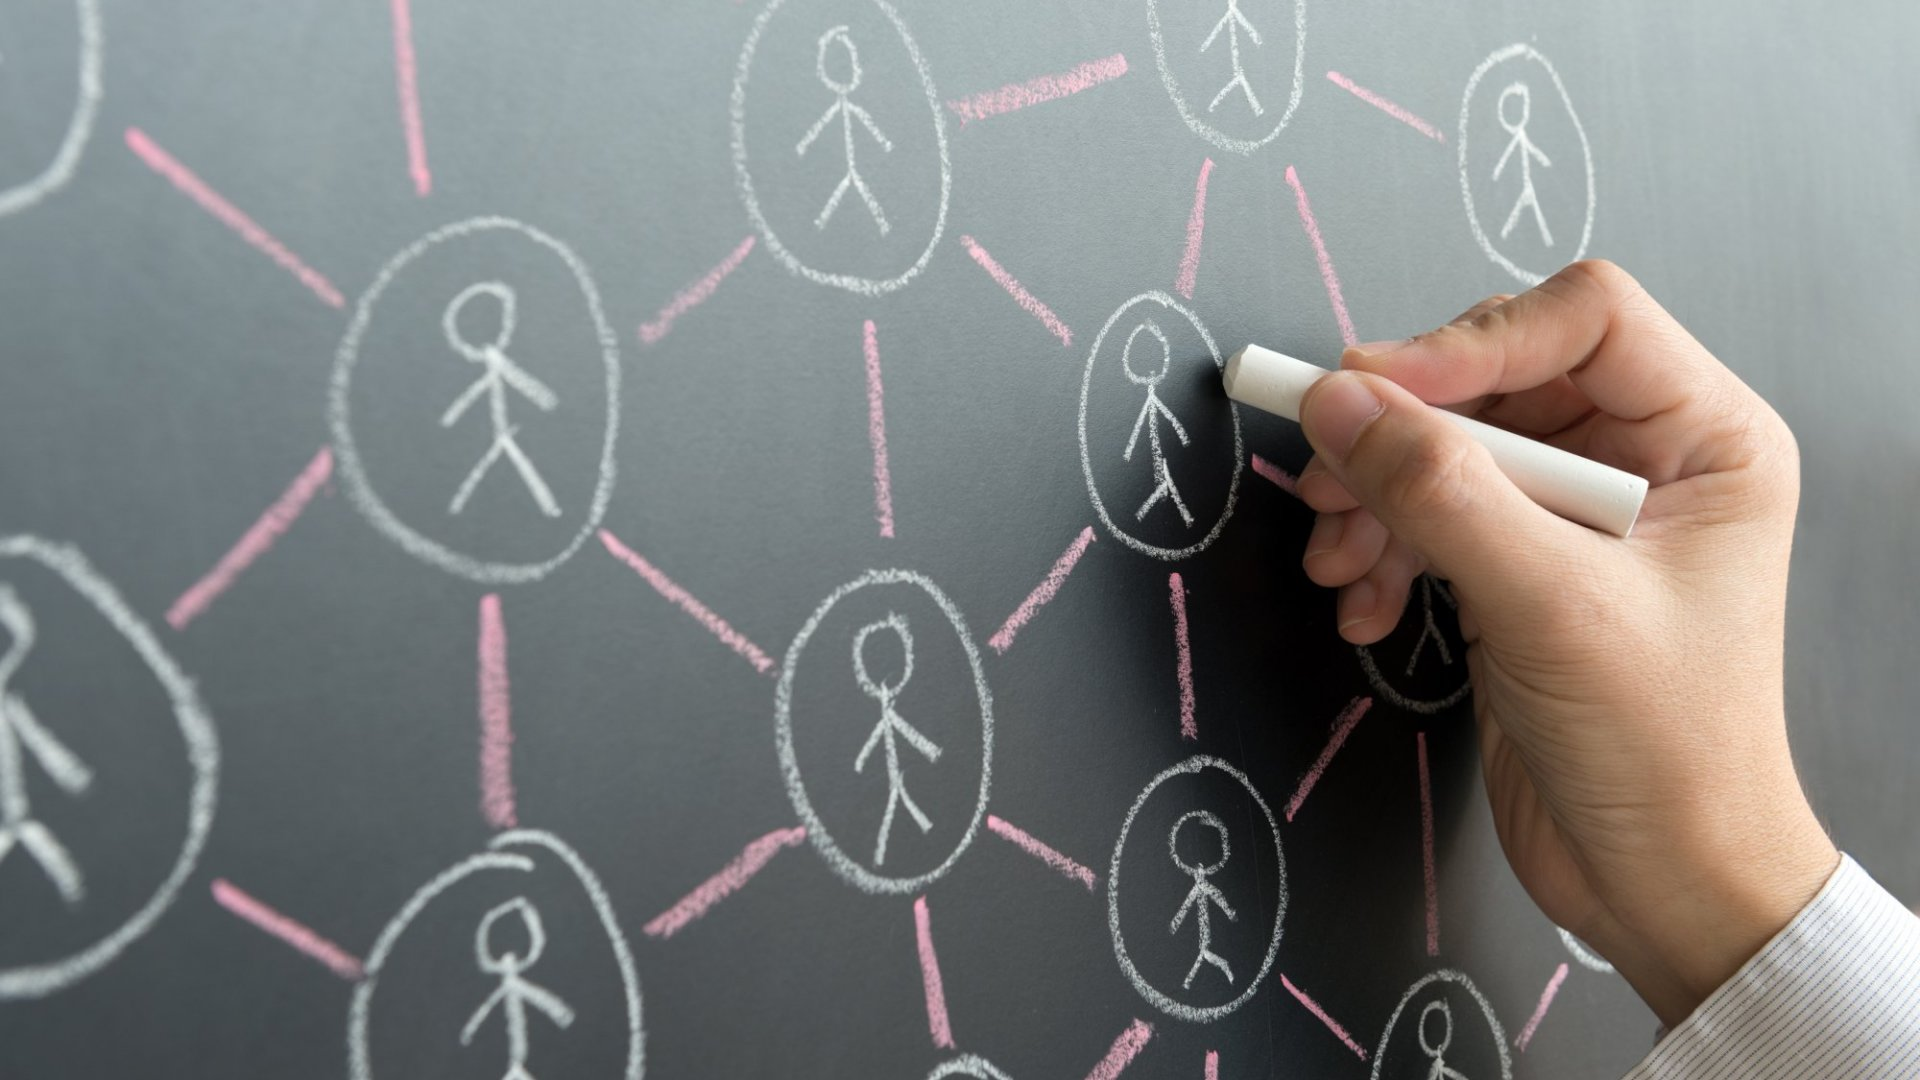 7 Habits to Build Your Center of Influence